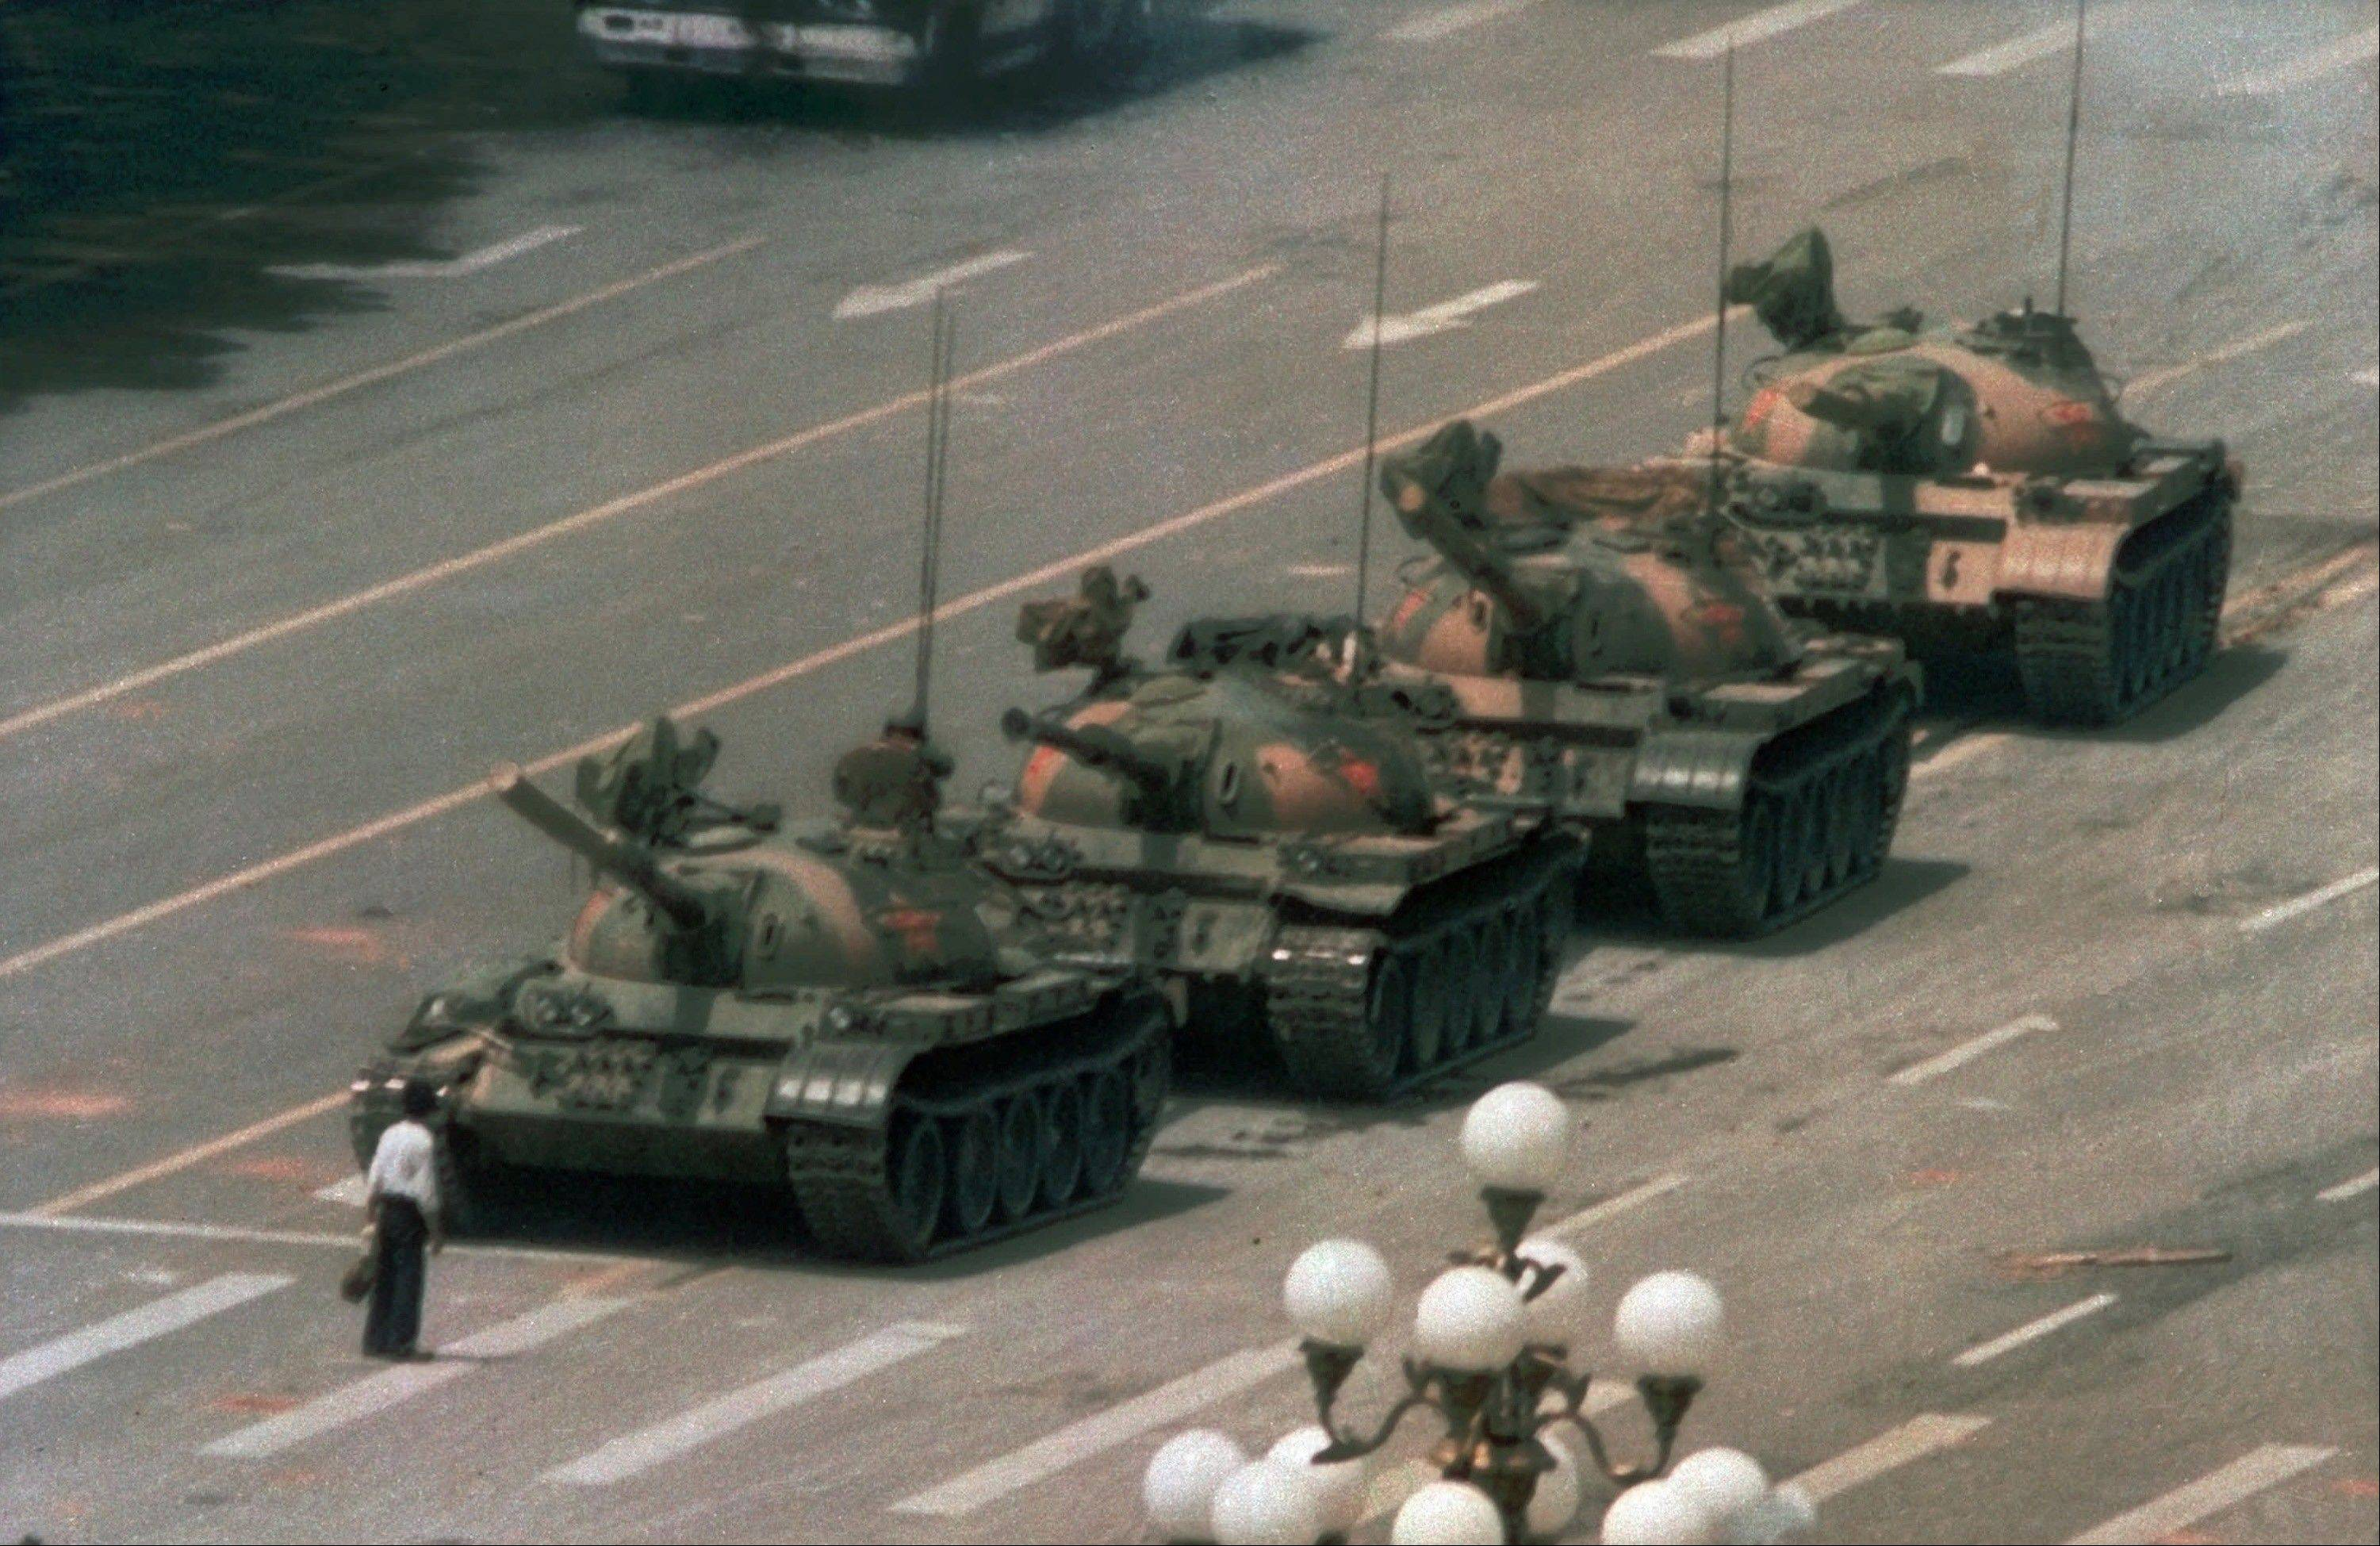 A Chinese man stands alone to block a line of tanks heading east on Beijing's Cangan Blvd. in Tiananmen Square in 1989.